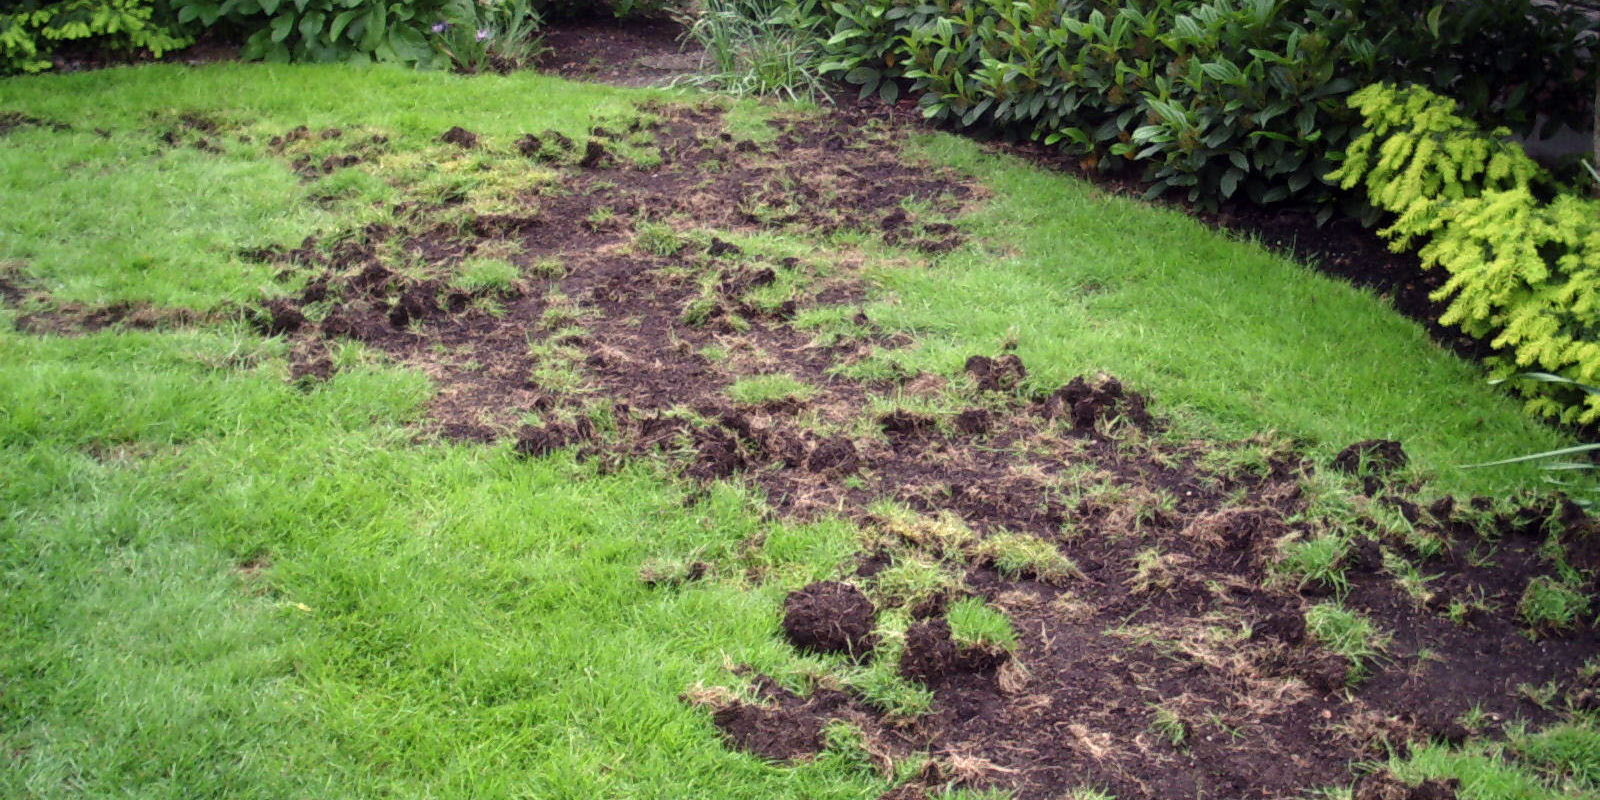 raccoons, skunks and crows can tear up your lawn, looking for pests.